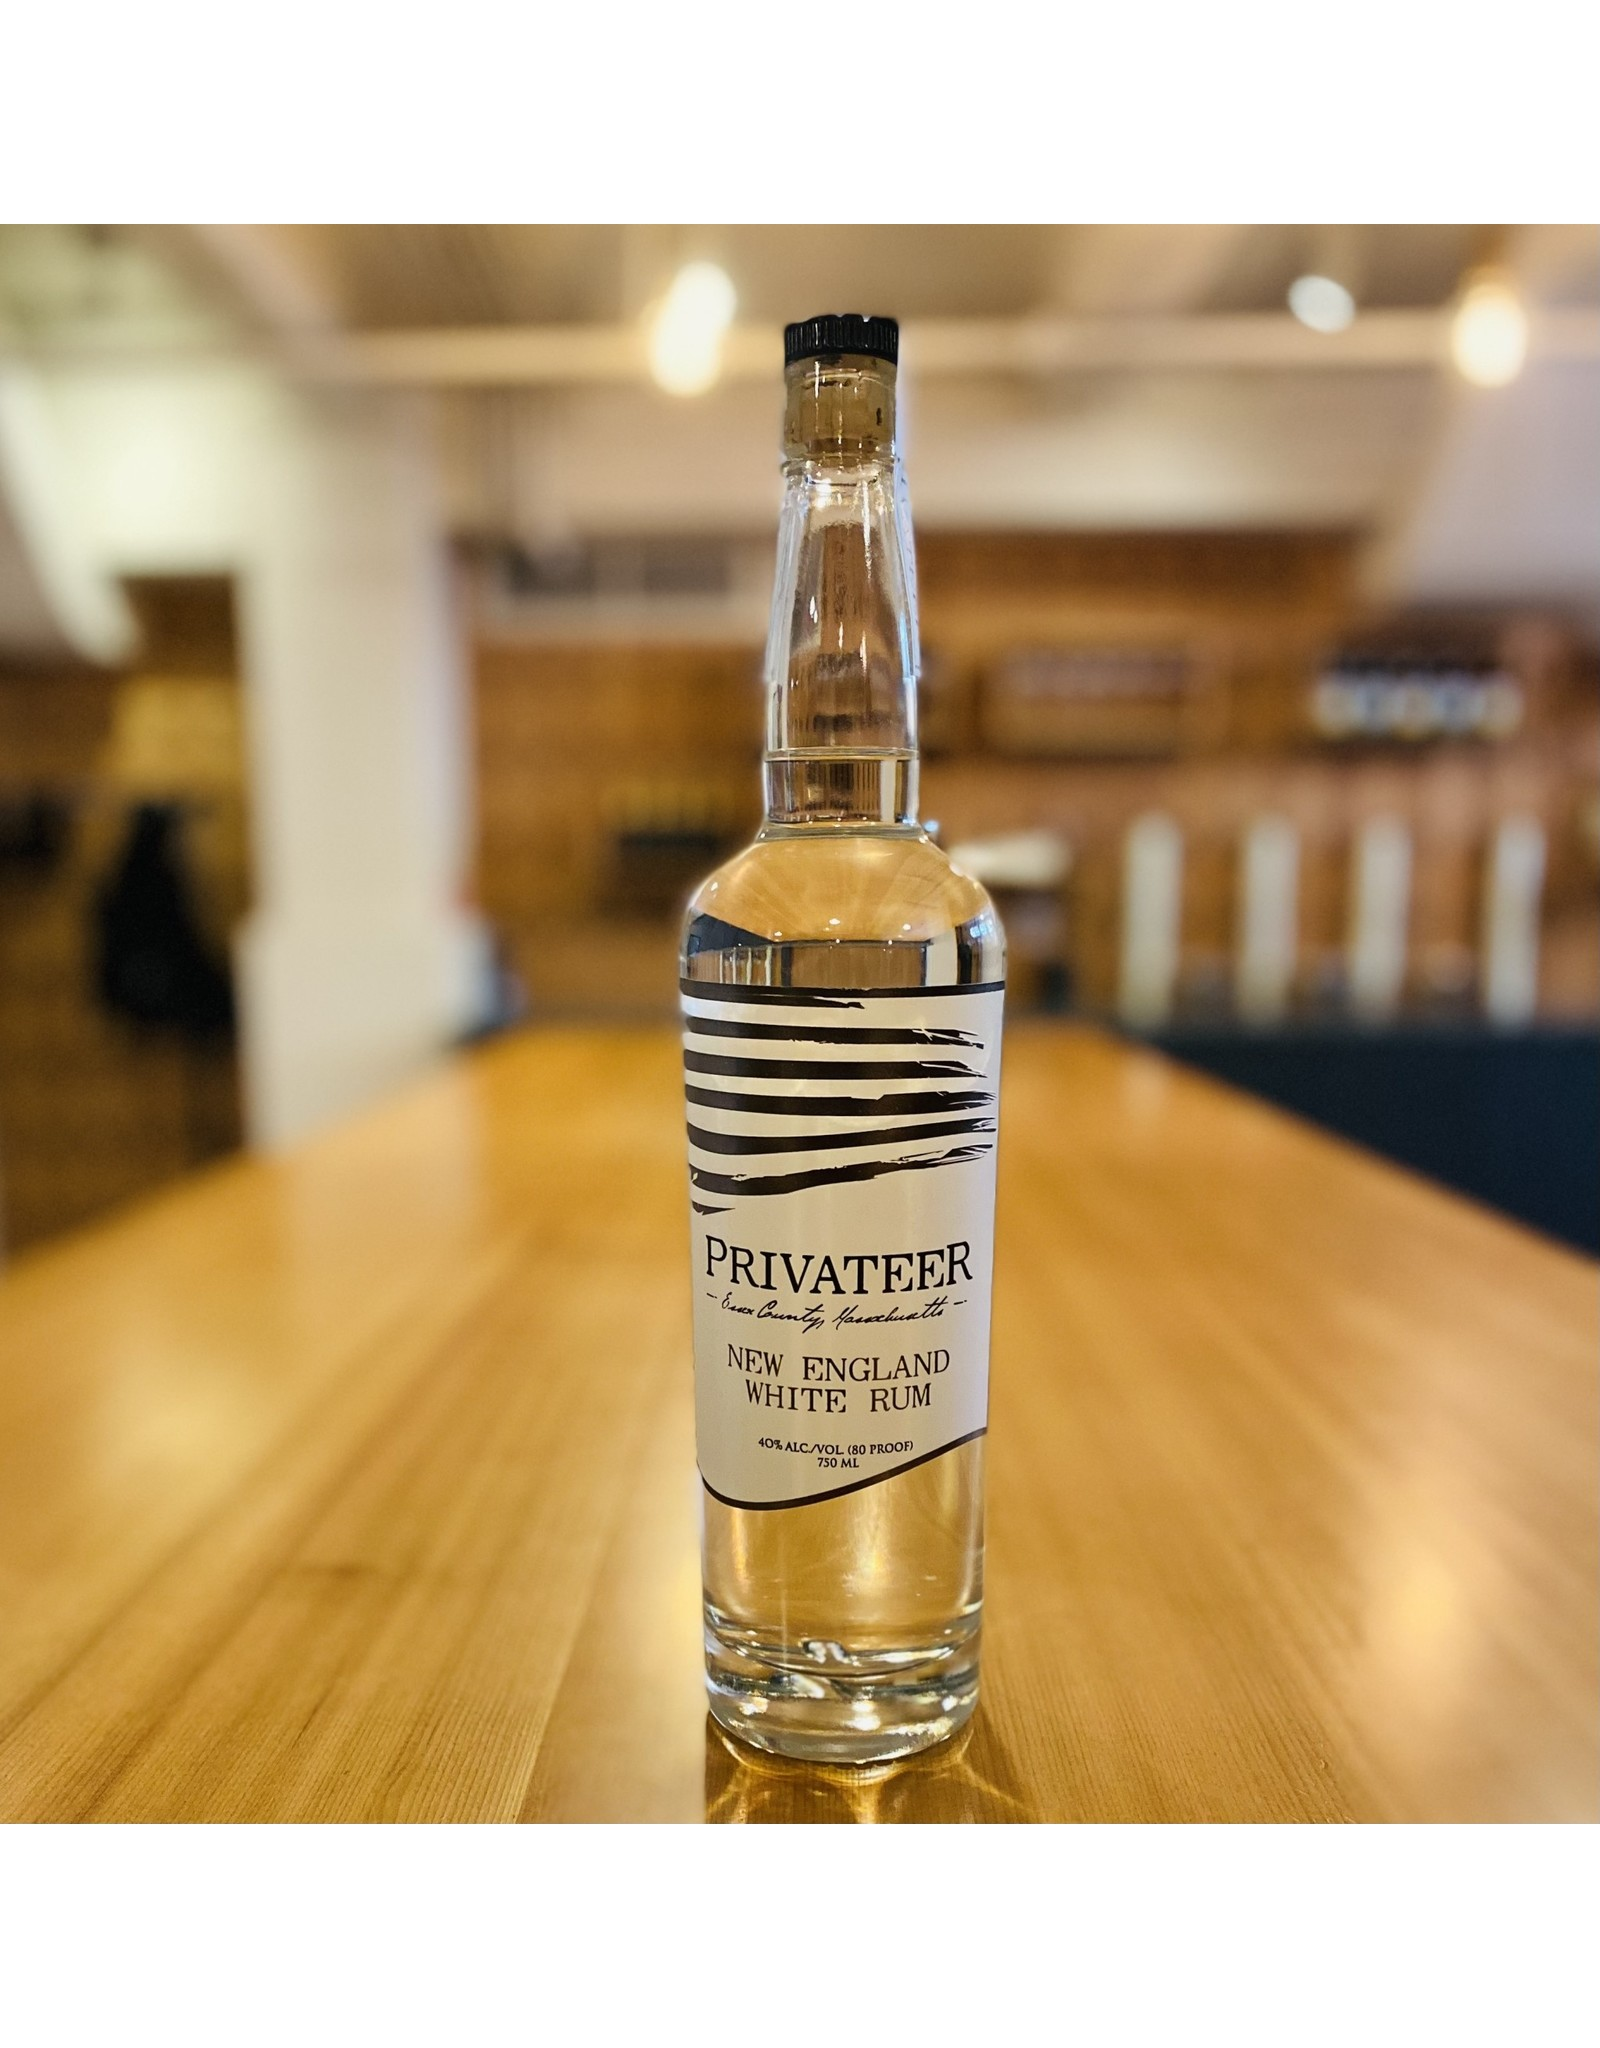 Local Privateer New England White Rum - Ipswich, MA